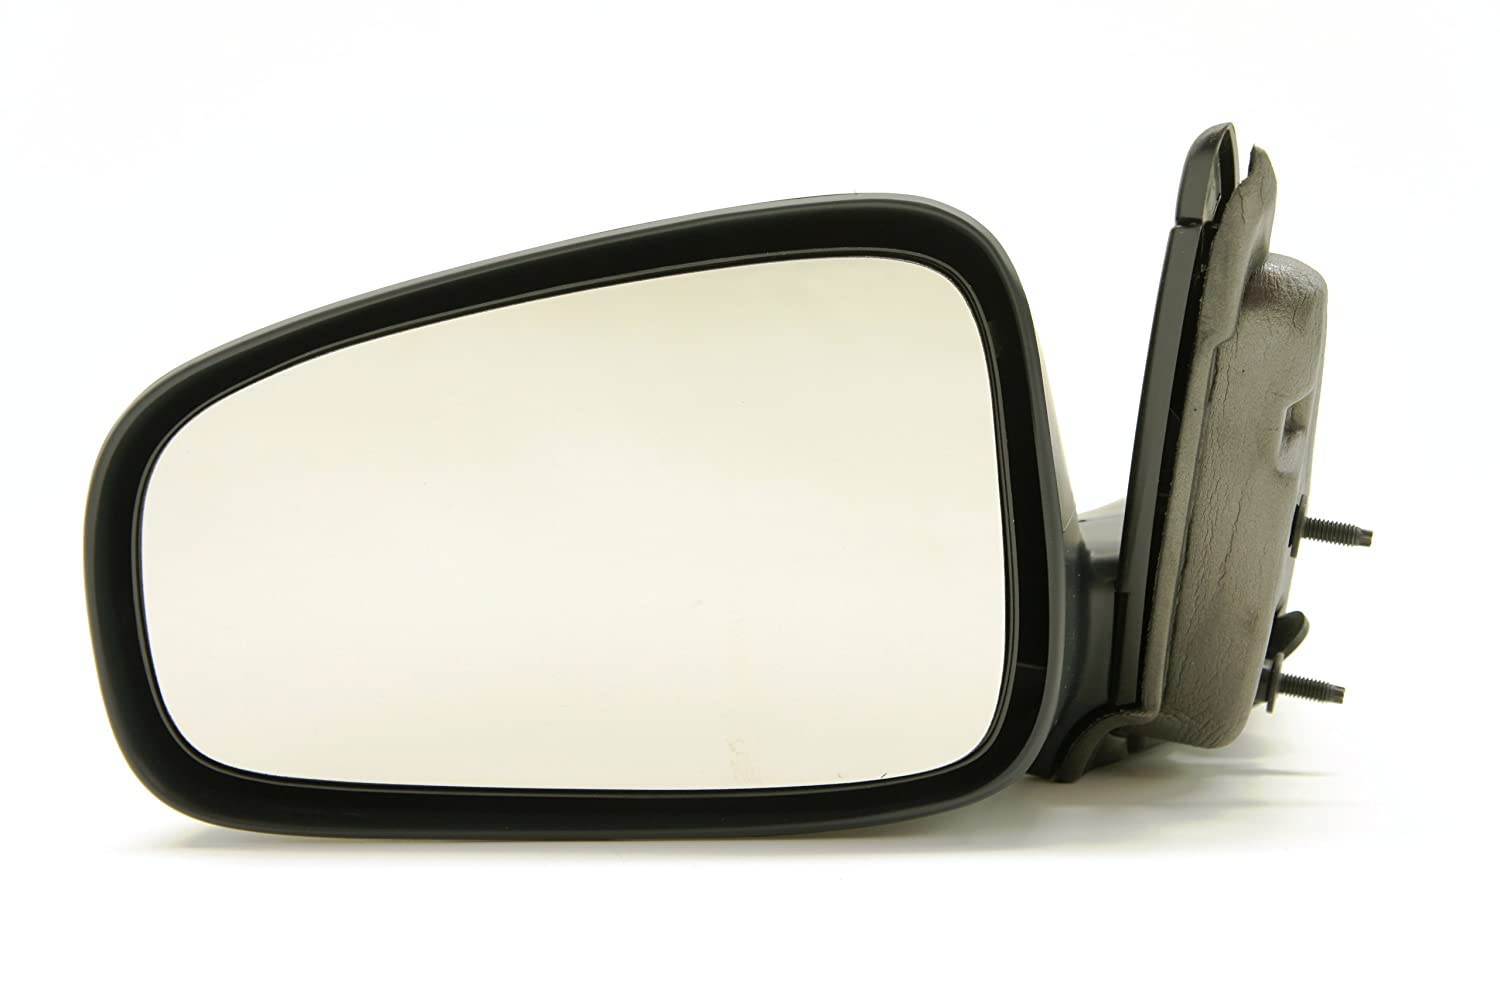 Genuine GM Parts 10331492 Driver Side Mirror Outside Rear View Genuine General Motors Parts